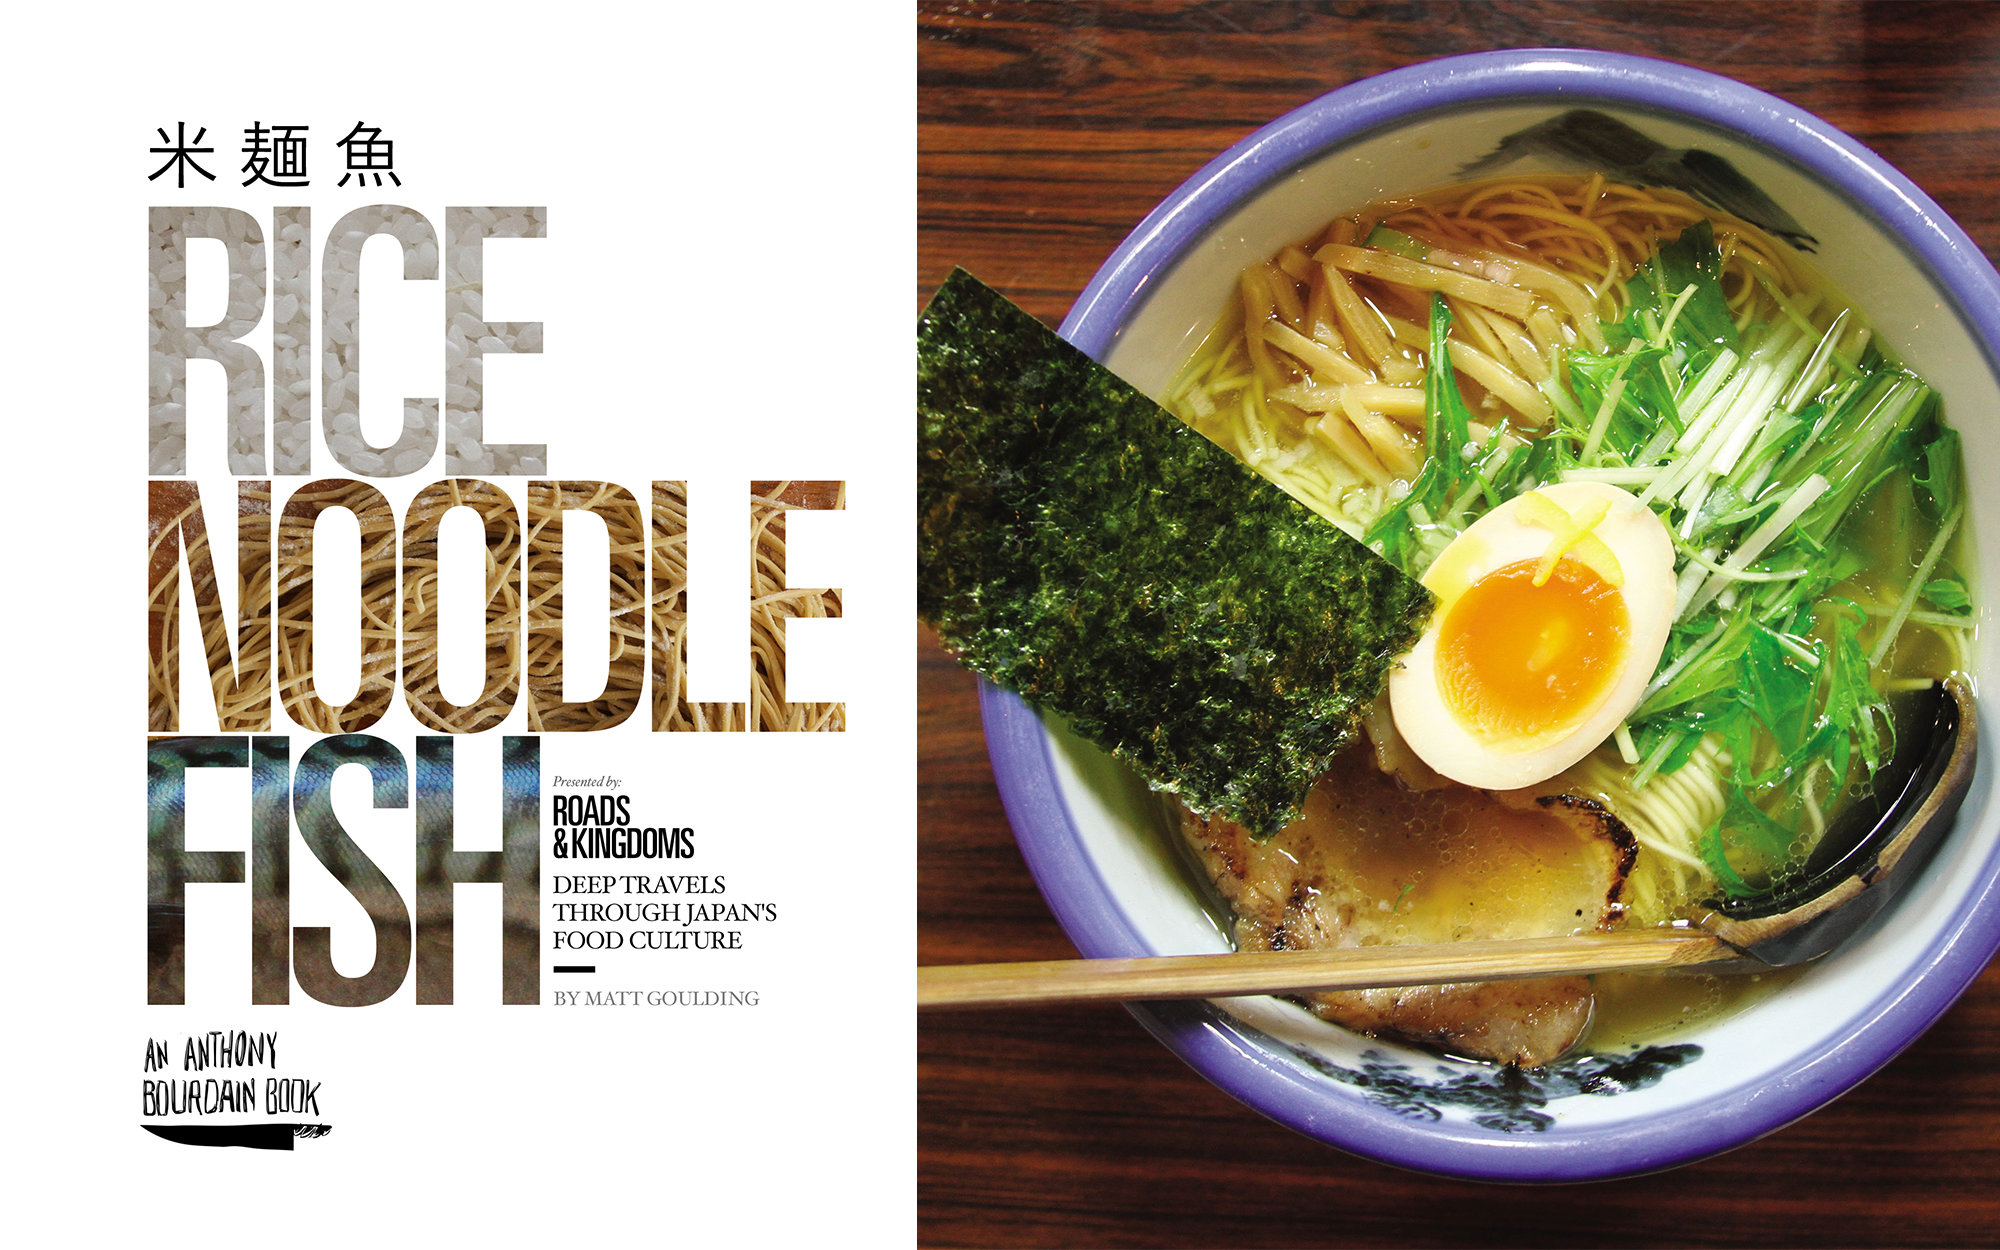 Download rice noodle fish deep travels through japan 39 s for Rice noodle fish